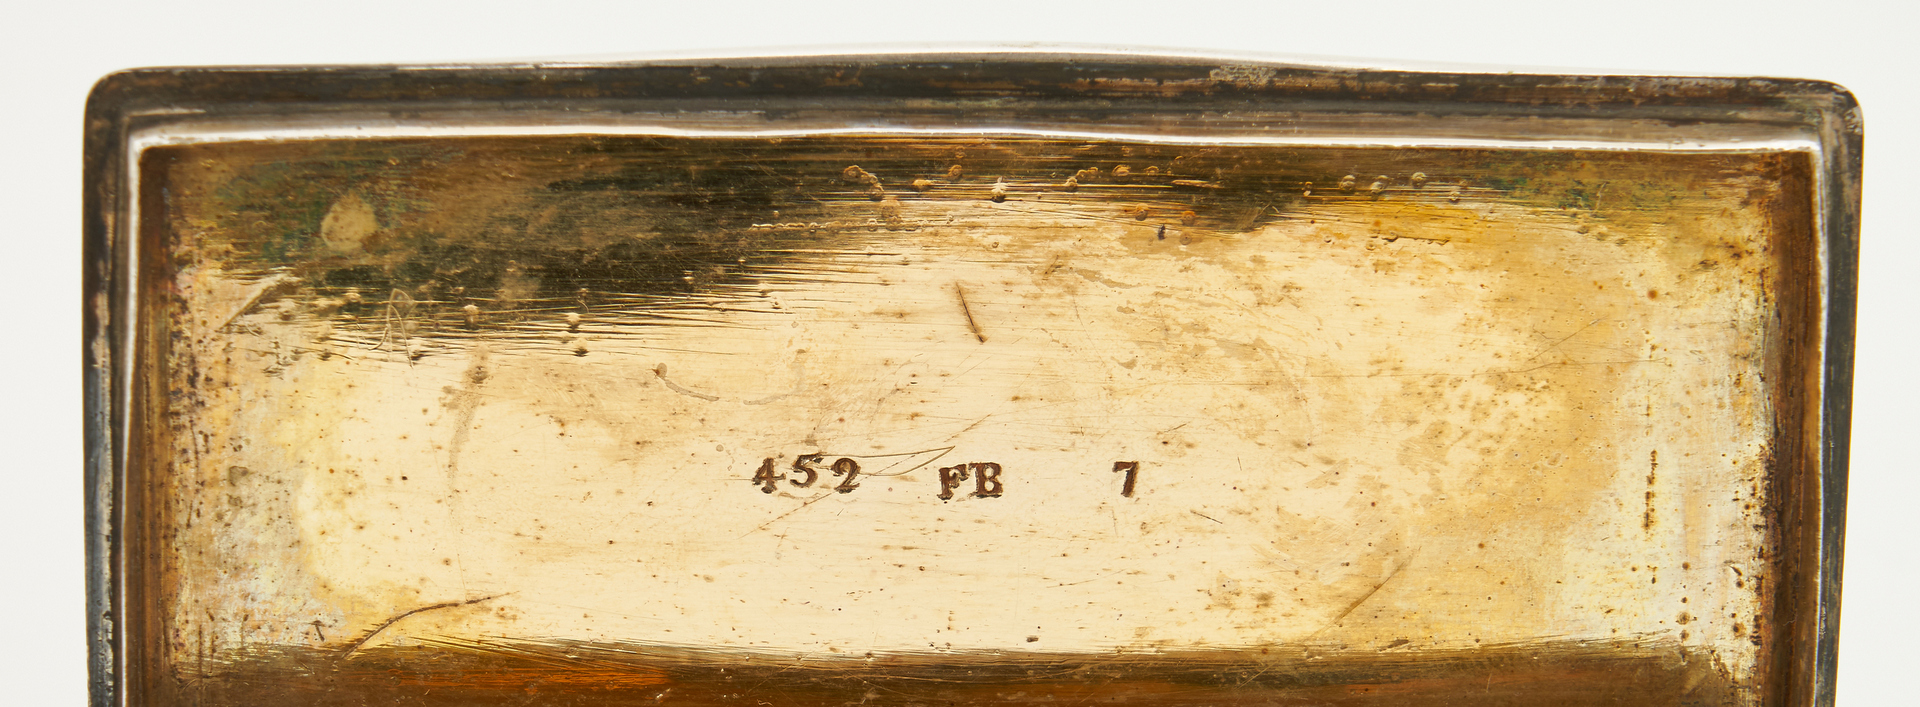 Lot 87: Snuff box and flatware incl. GA, LA makers, 8 pcs.